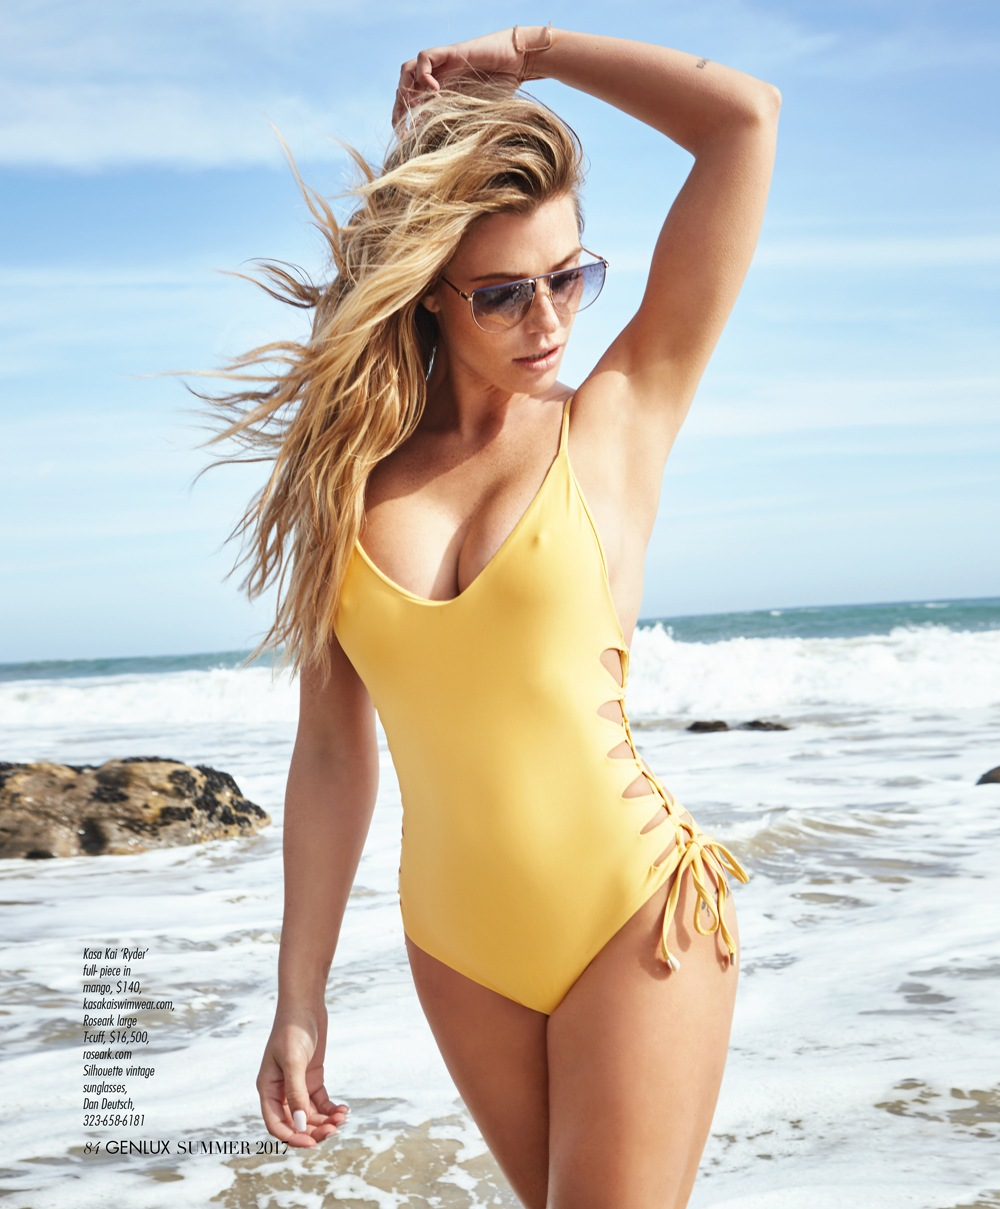 Sports Illustrated supermodel Samantha Hoopes wears vintage Silhouette sunglasses from Dan Deutsch Optical Outlook